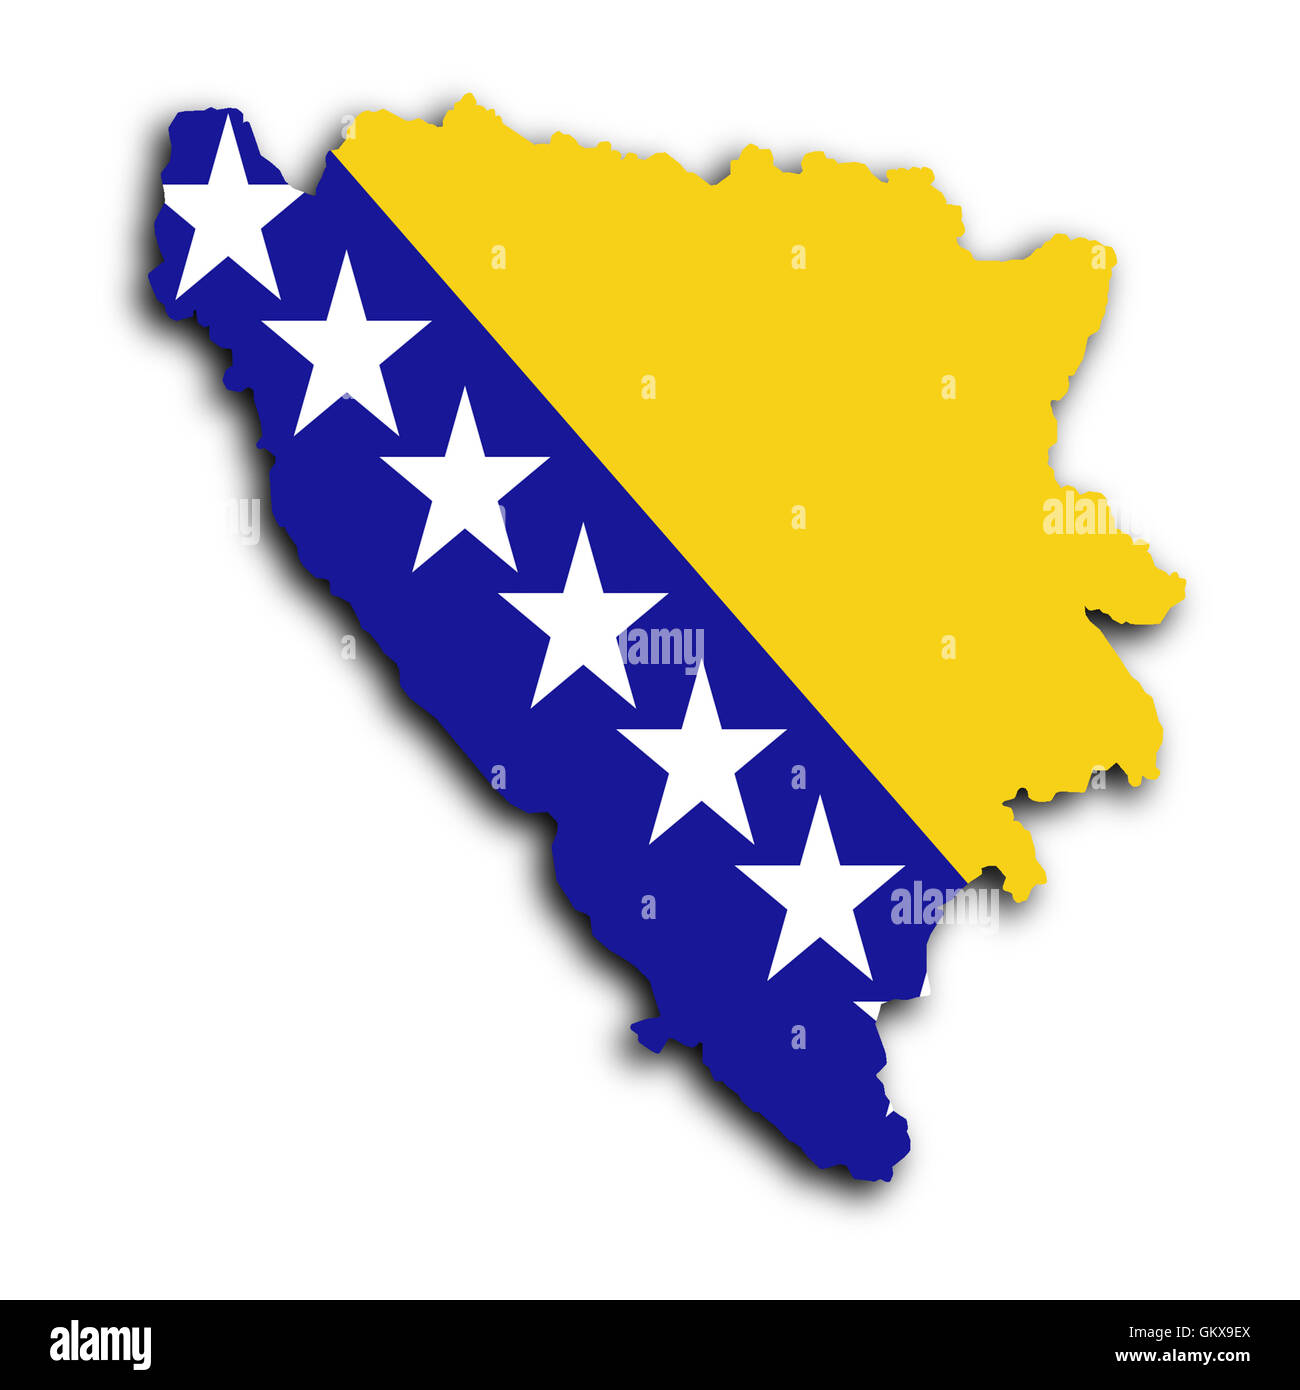 Map of Bosnia and Herzegovina - Stock Image